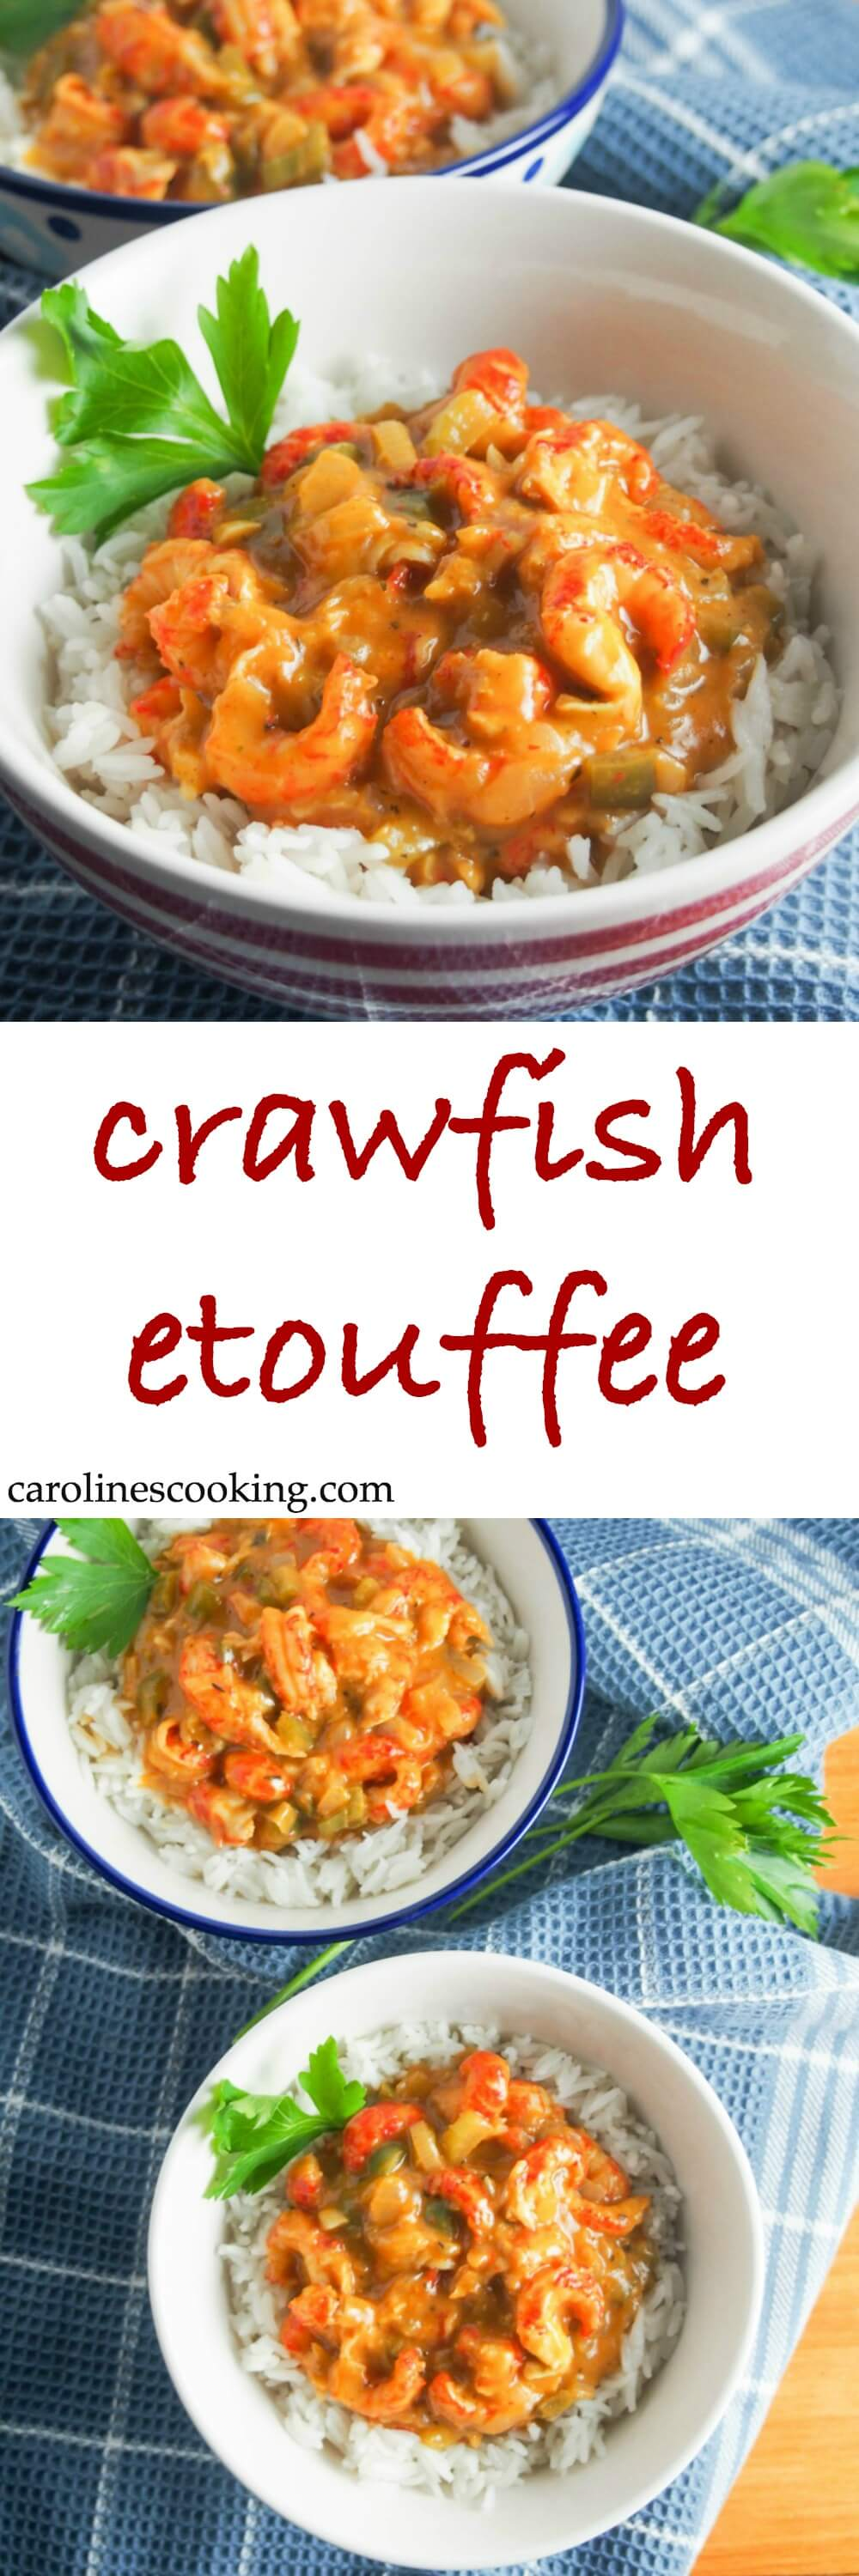 Crawfish etouffee is a classic Cajun stew - this version is lightened up & speeded up a little but still full of fantastic flavors. A comforting seafood stew, it's a delicious dinner whether as part of Mardi Gras celebrations or any time. #crawfish #cajunfood